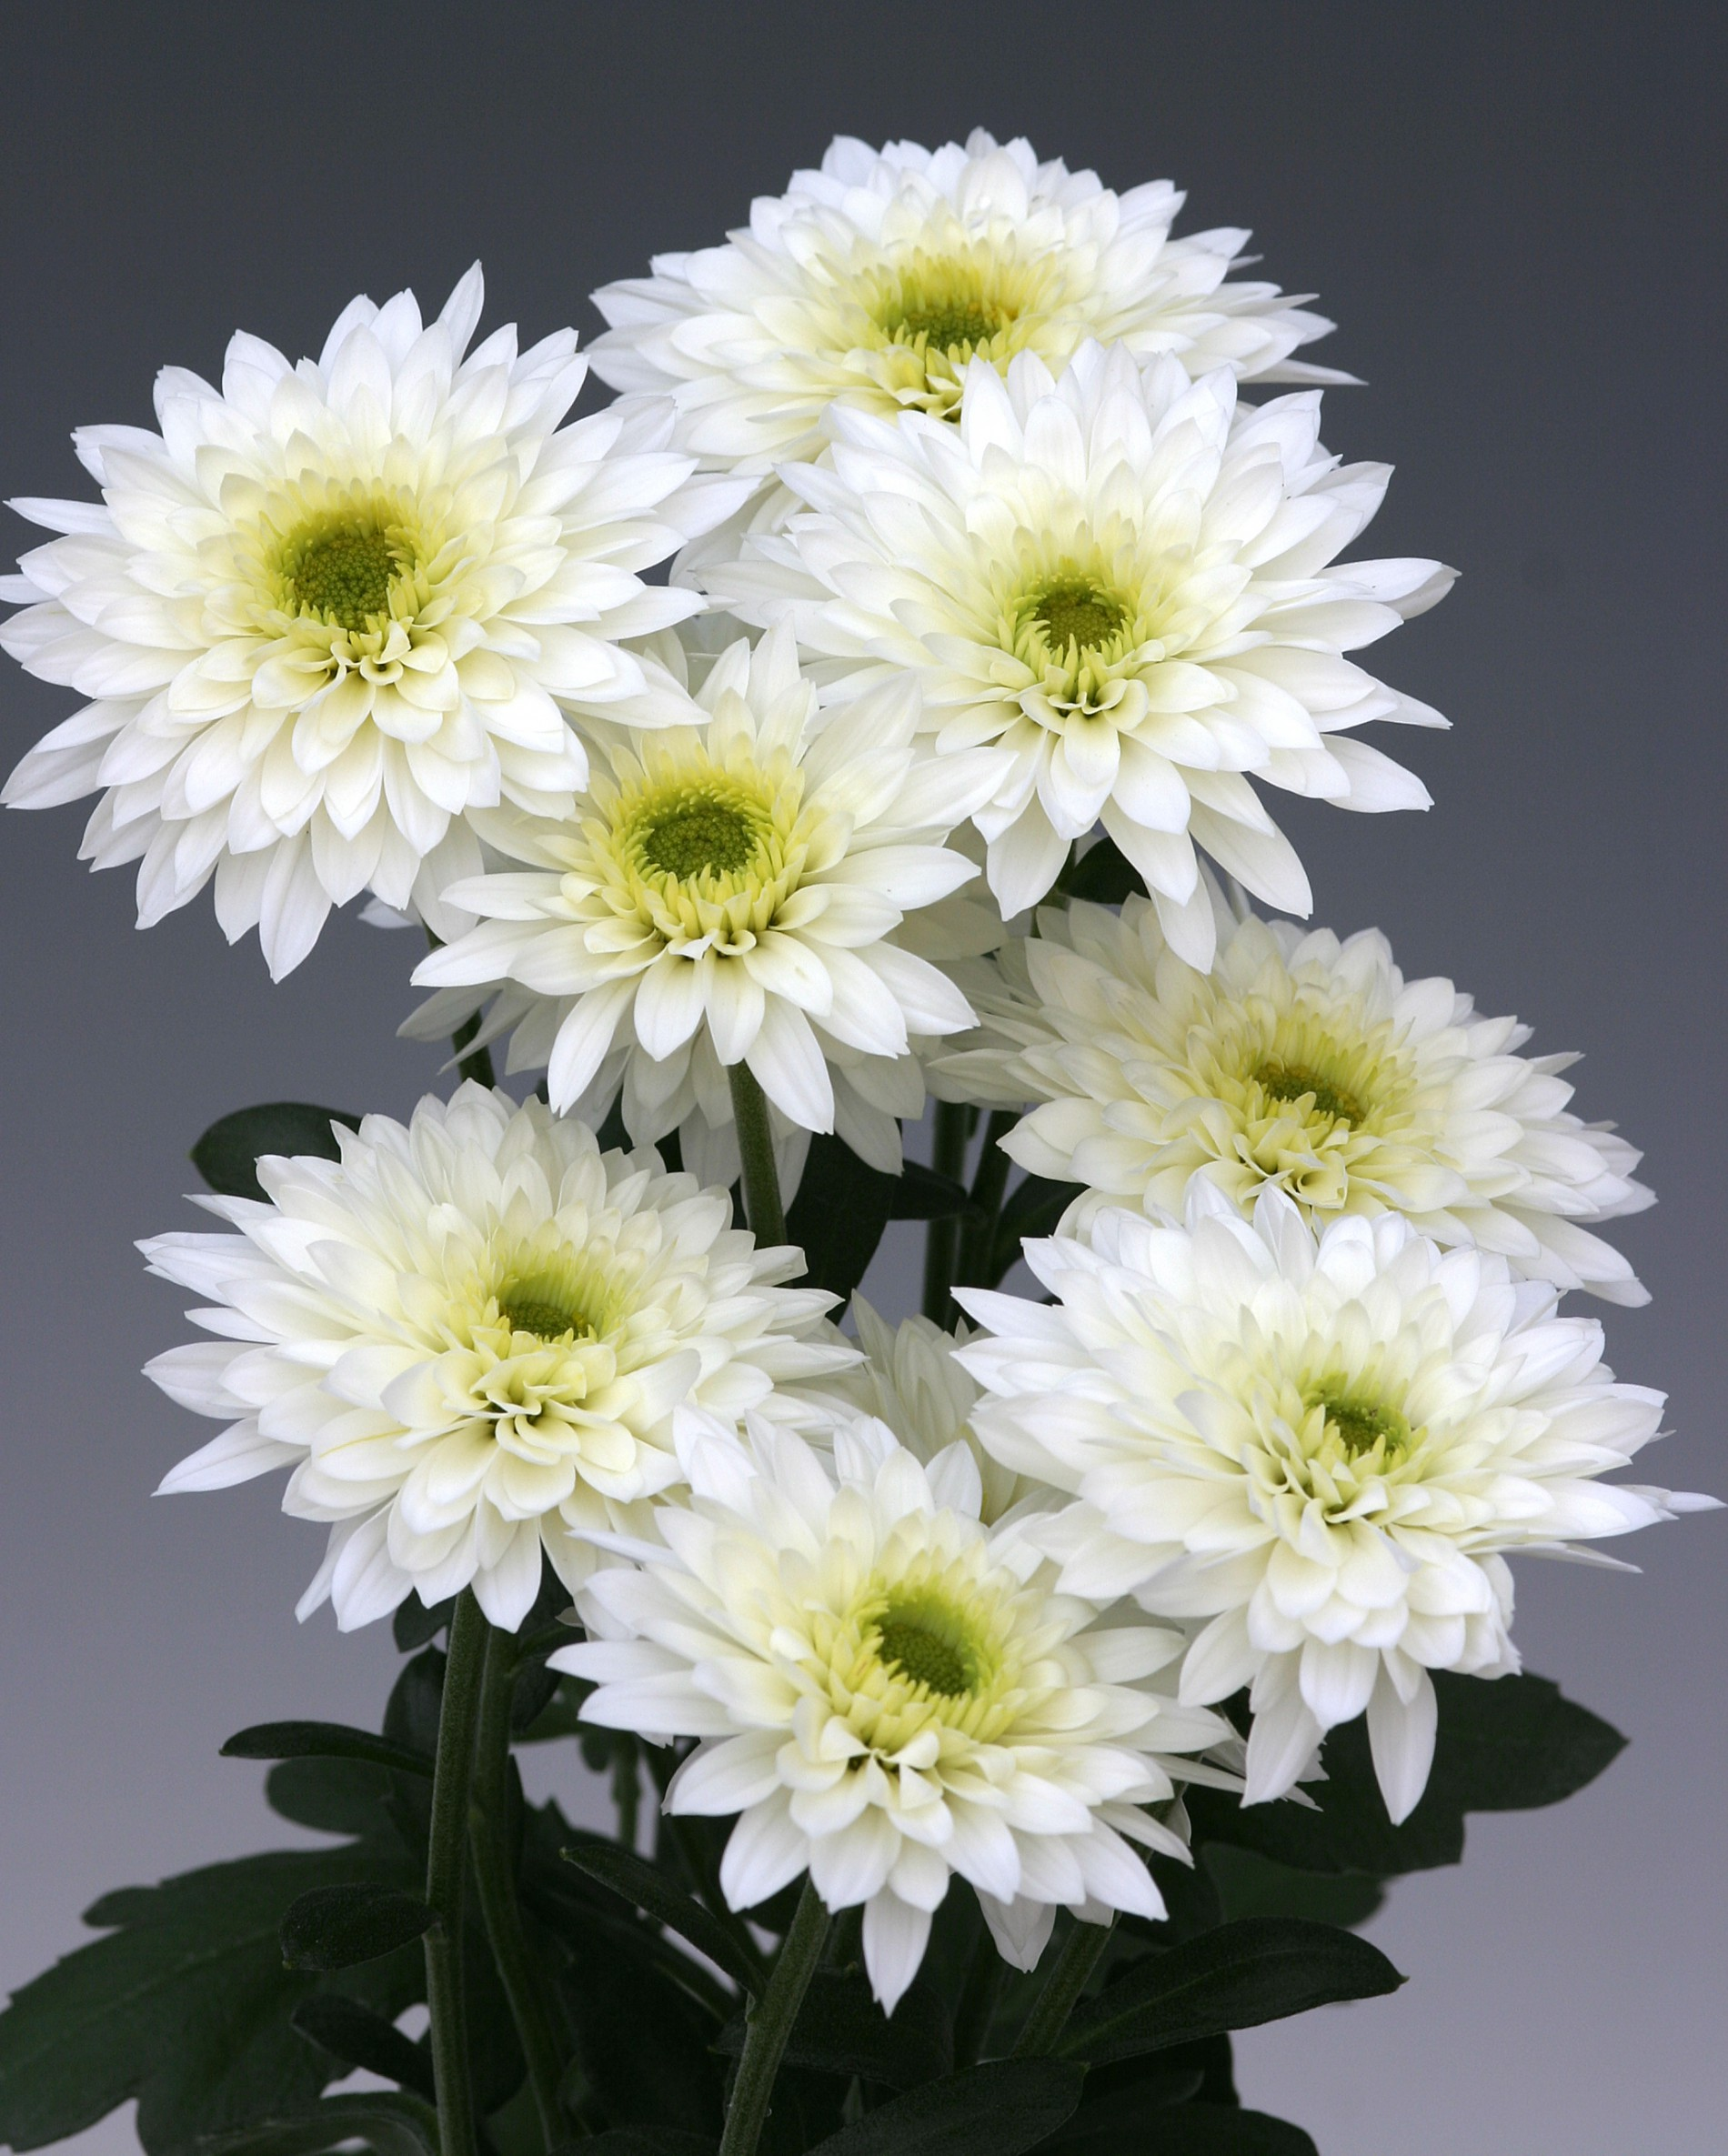 Chrysanthemum Indicum Winterhart Chrysanthemen